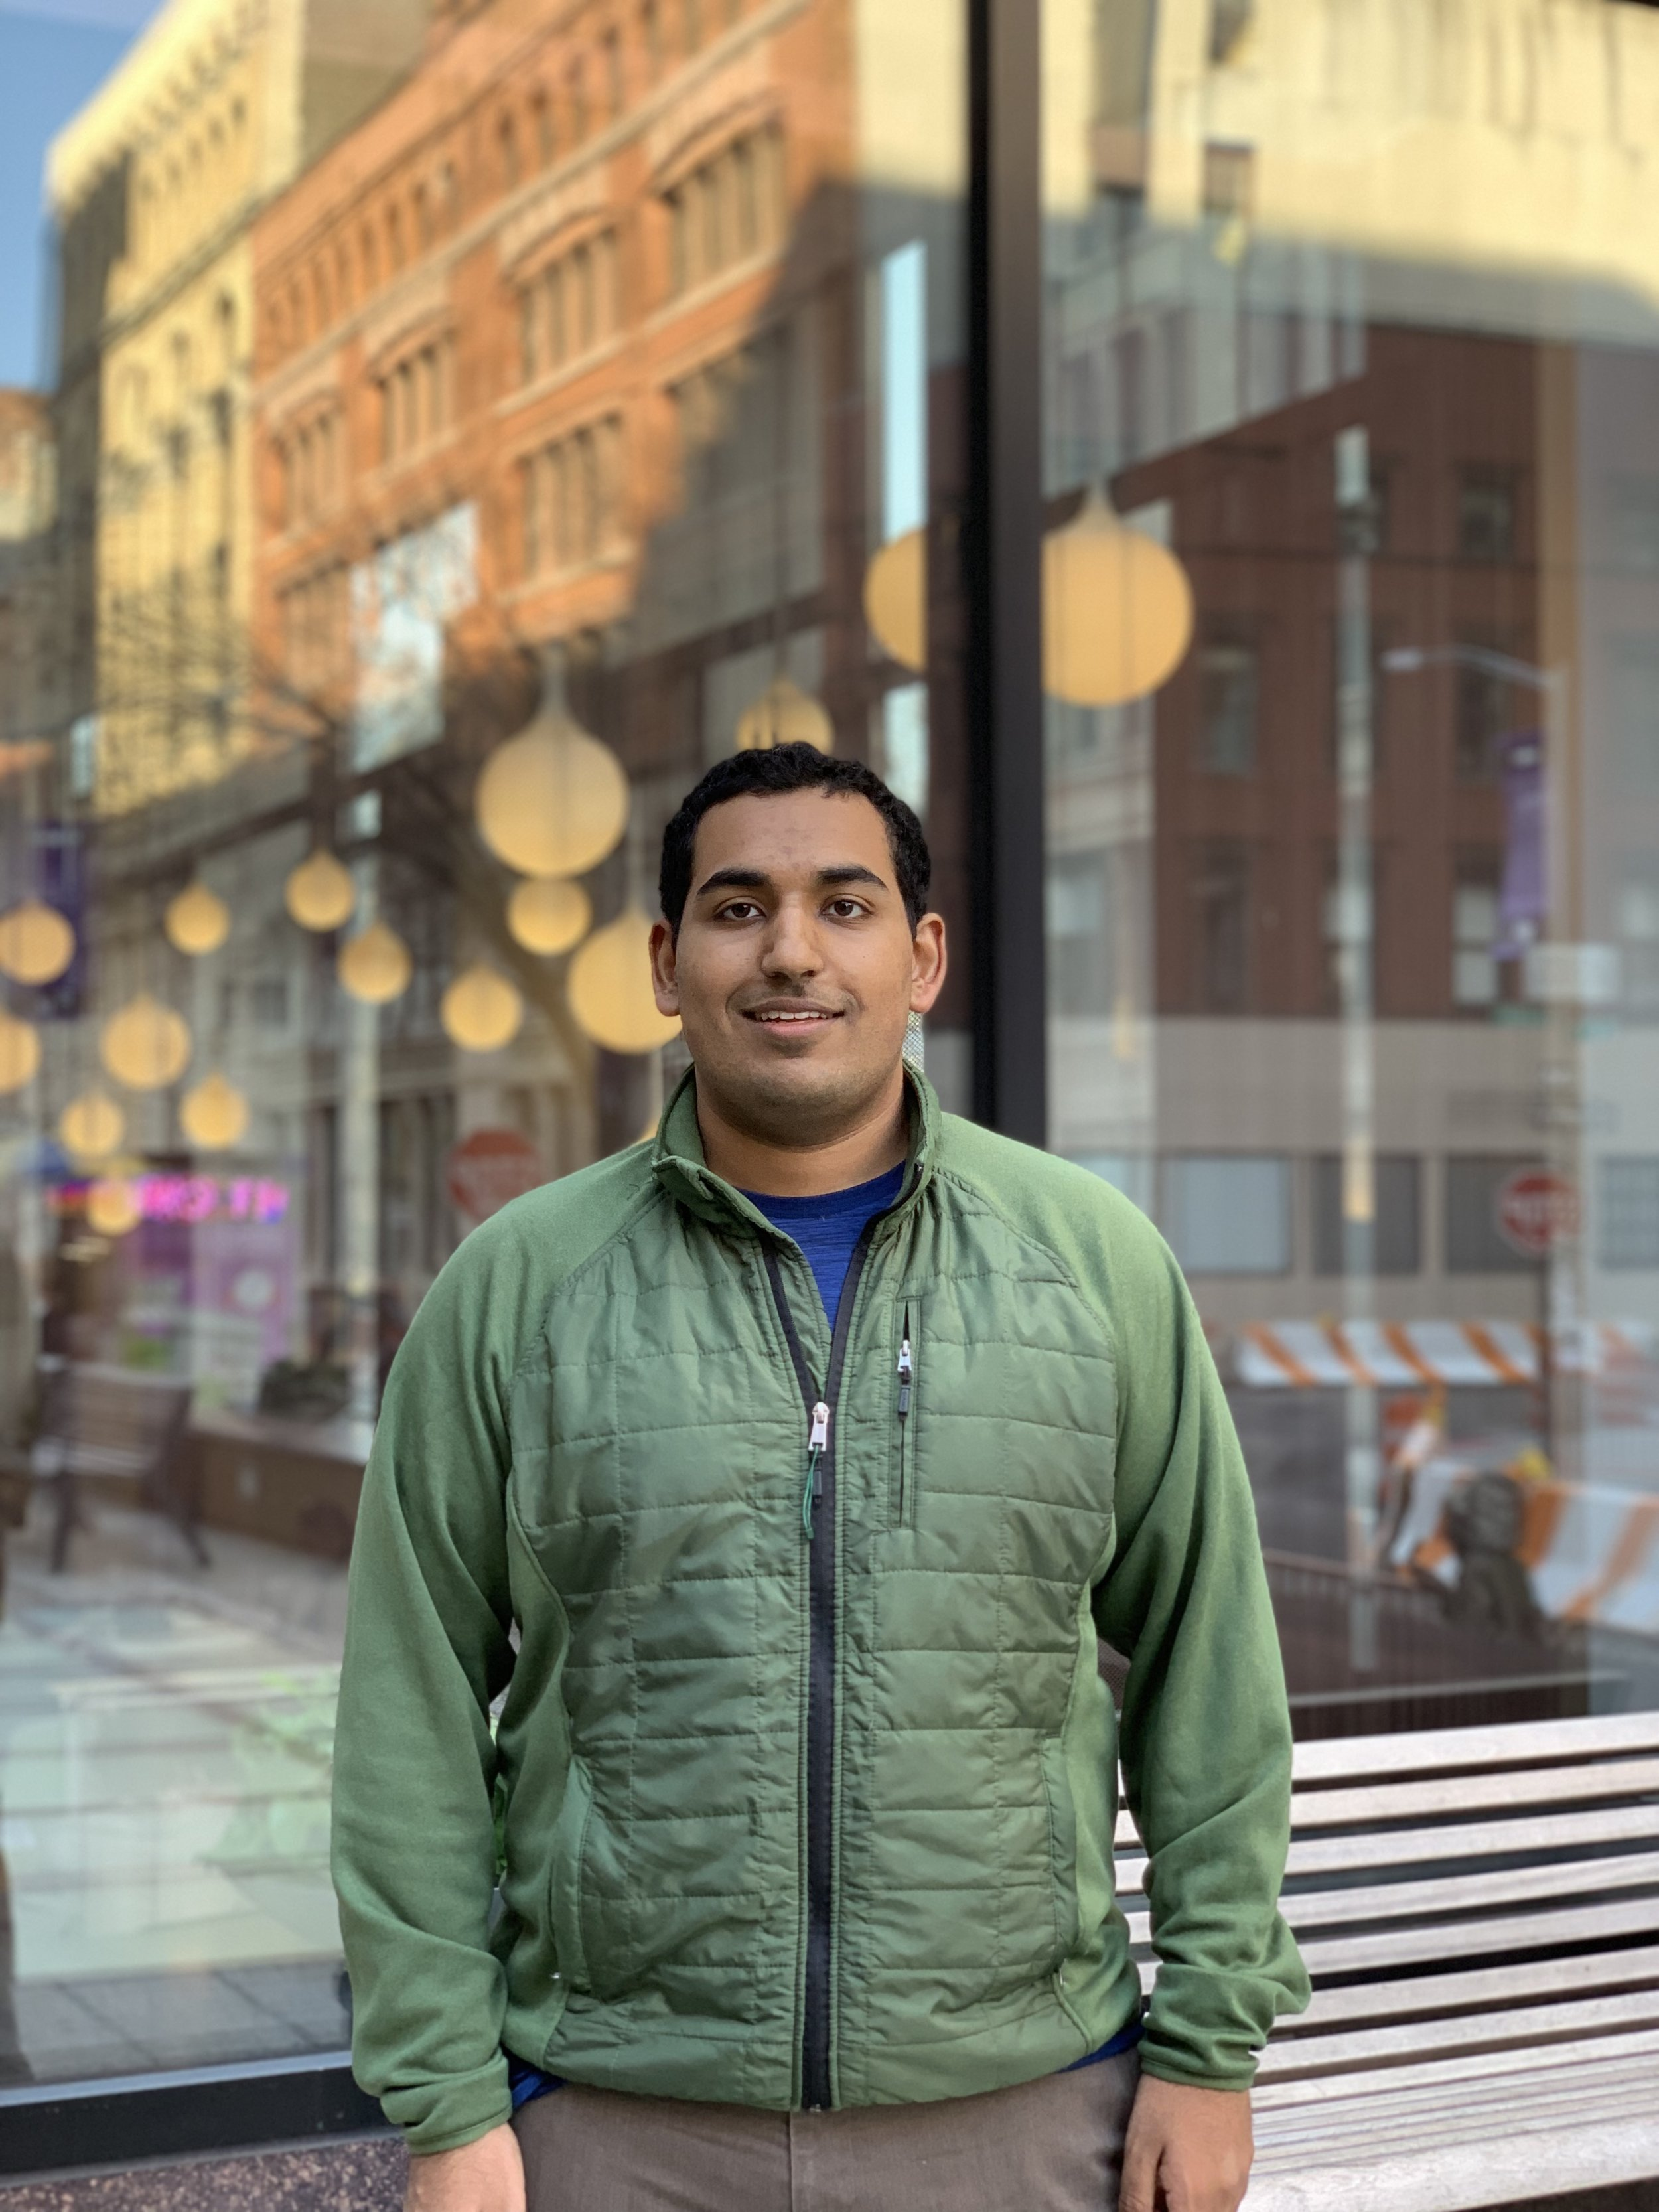 Aadil Bhore    Quantitative Portfolio Manager   Aadil is a junior from Basking Ridge, New Jersey concentrating in Finance and majoring in Mathematics. In his free time, Aadil enjoys creating and solving brainteasers, cooking, and listening to music.